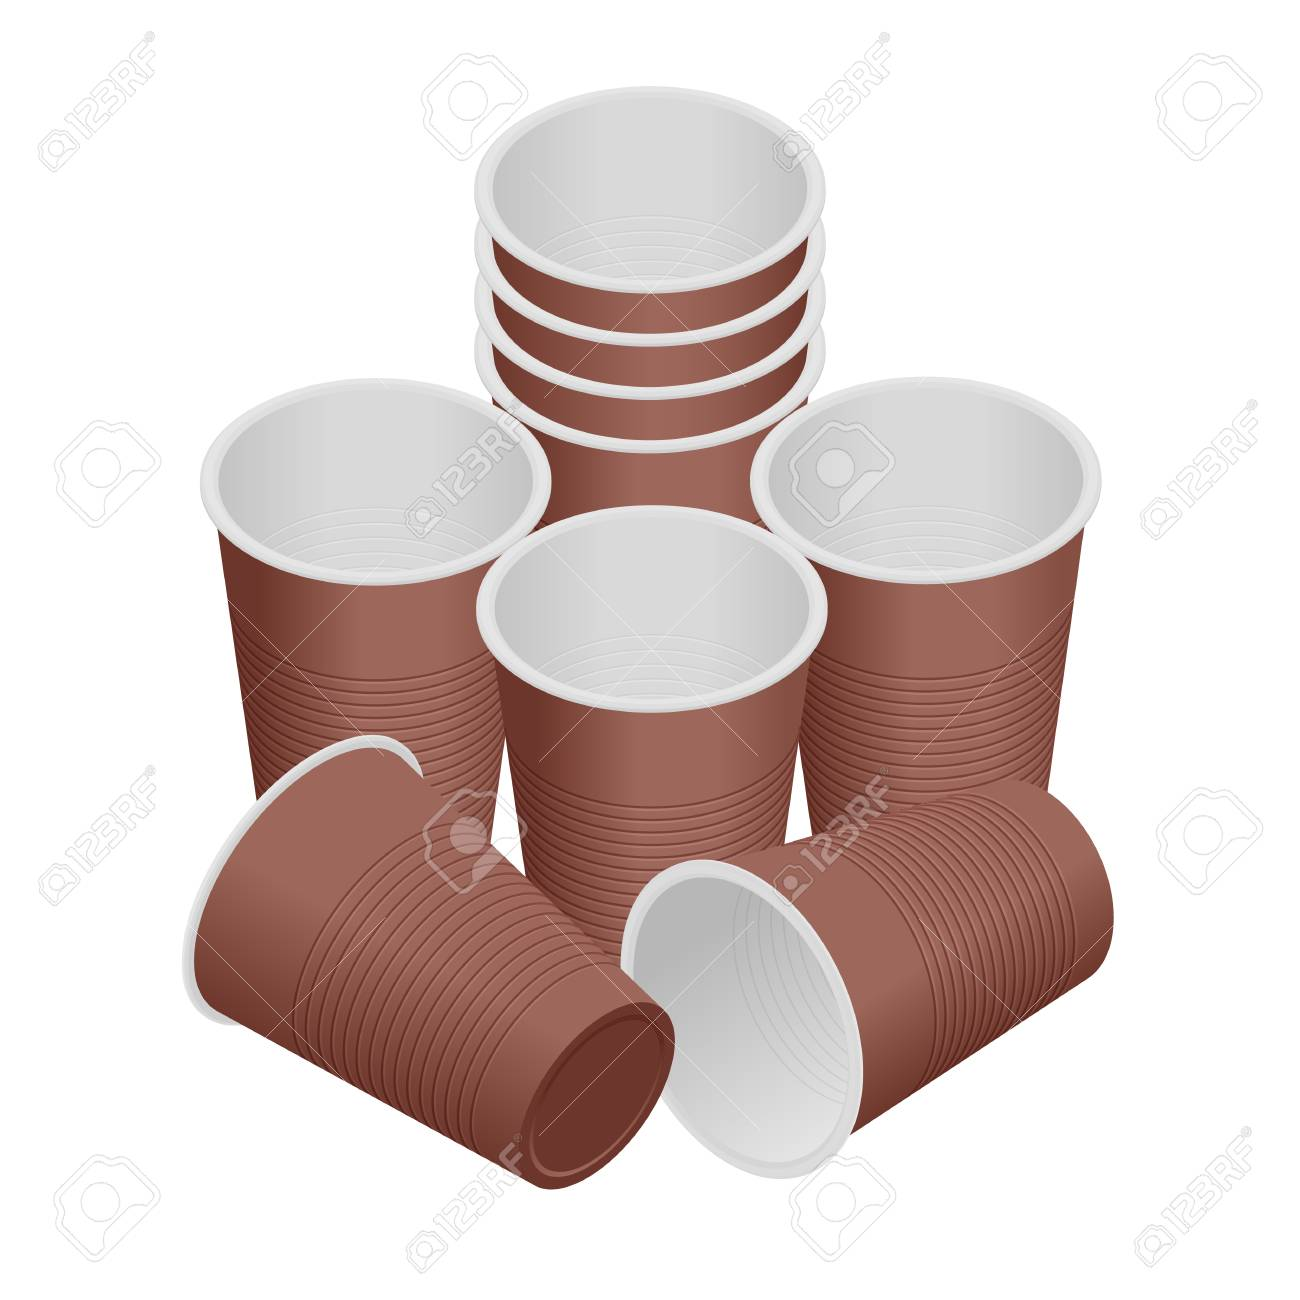 Isometric Plastic Cup Empty White Plastic Disposable Cups Royalty Free Cliparts Vectors And Stock Illustration Image 125384916